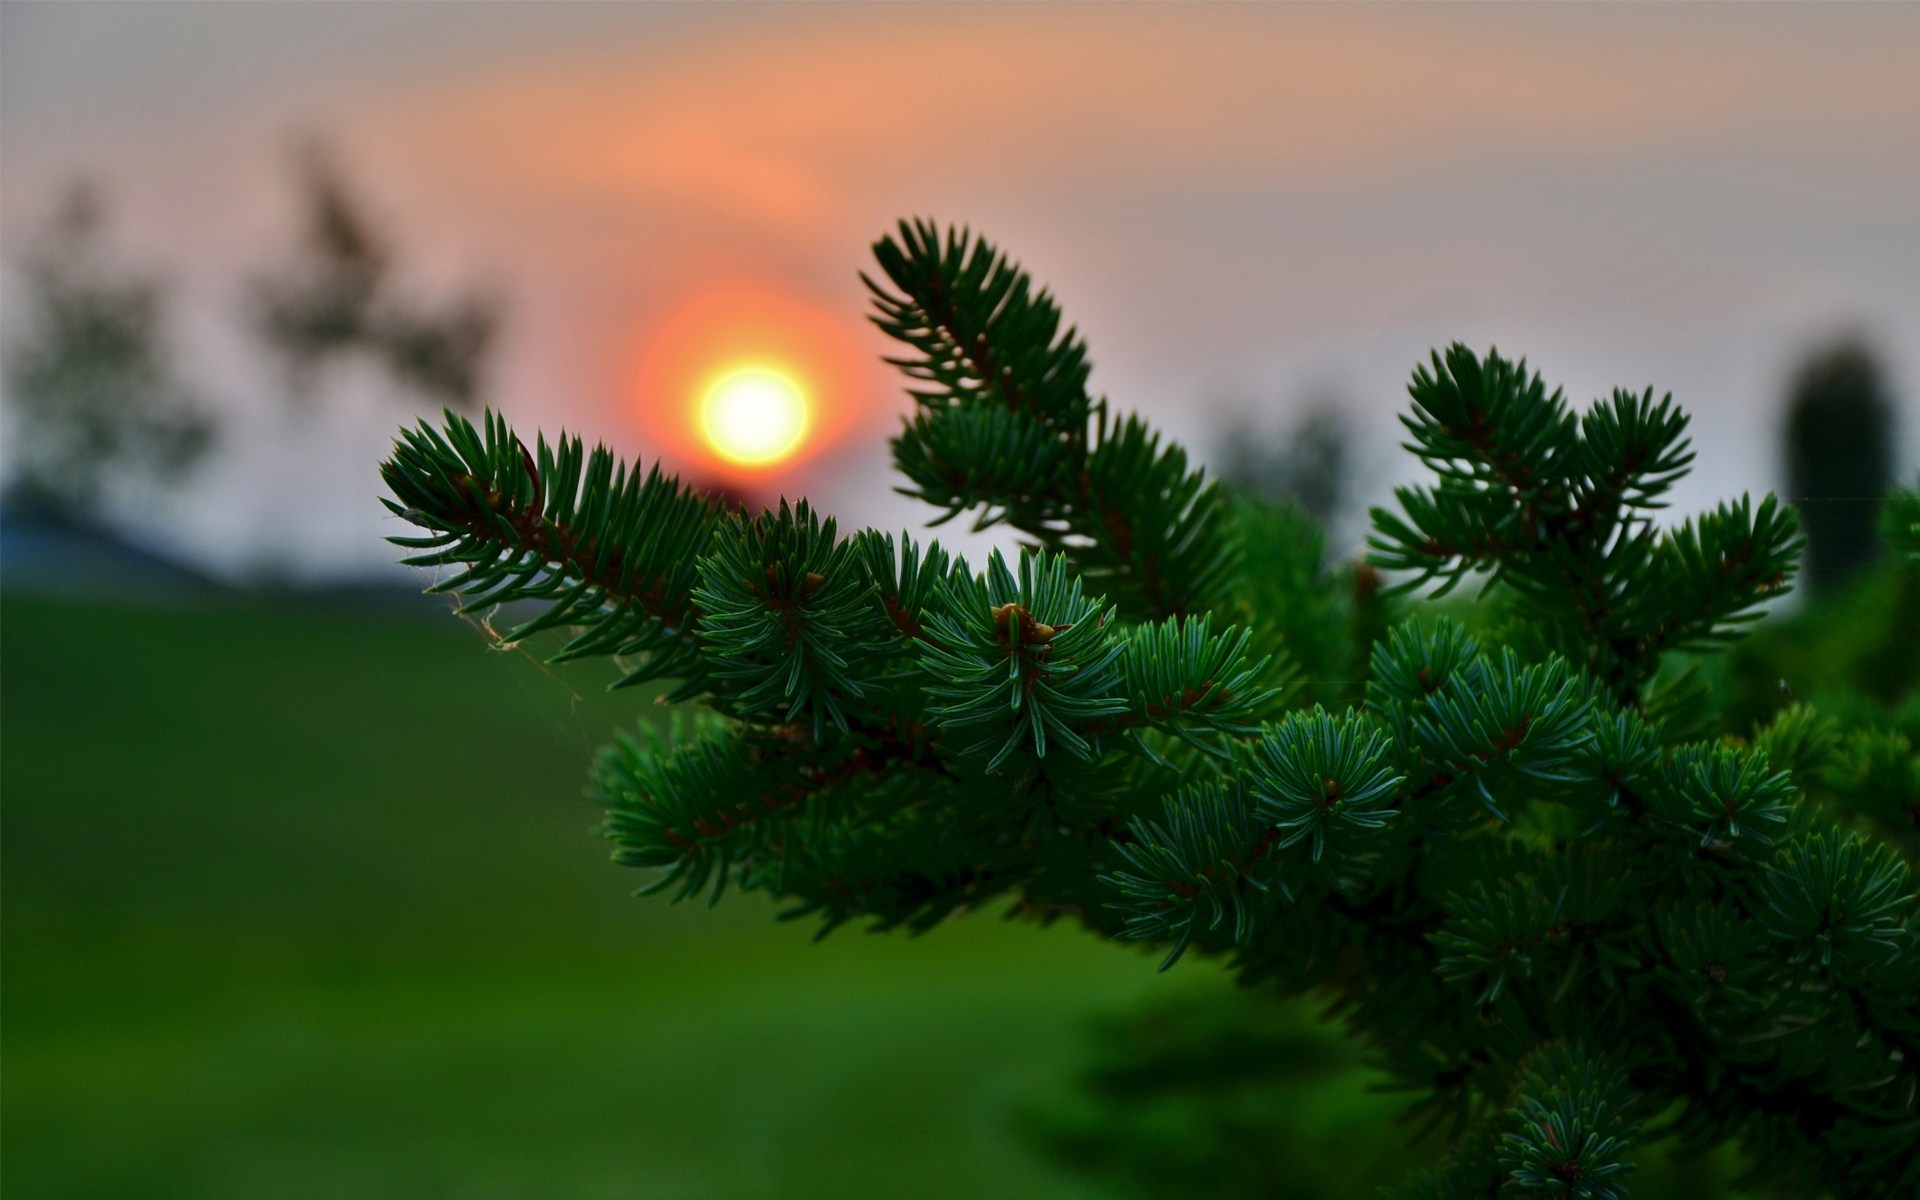 sunset images pine